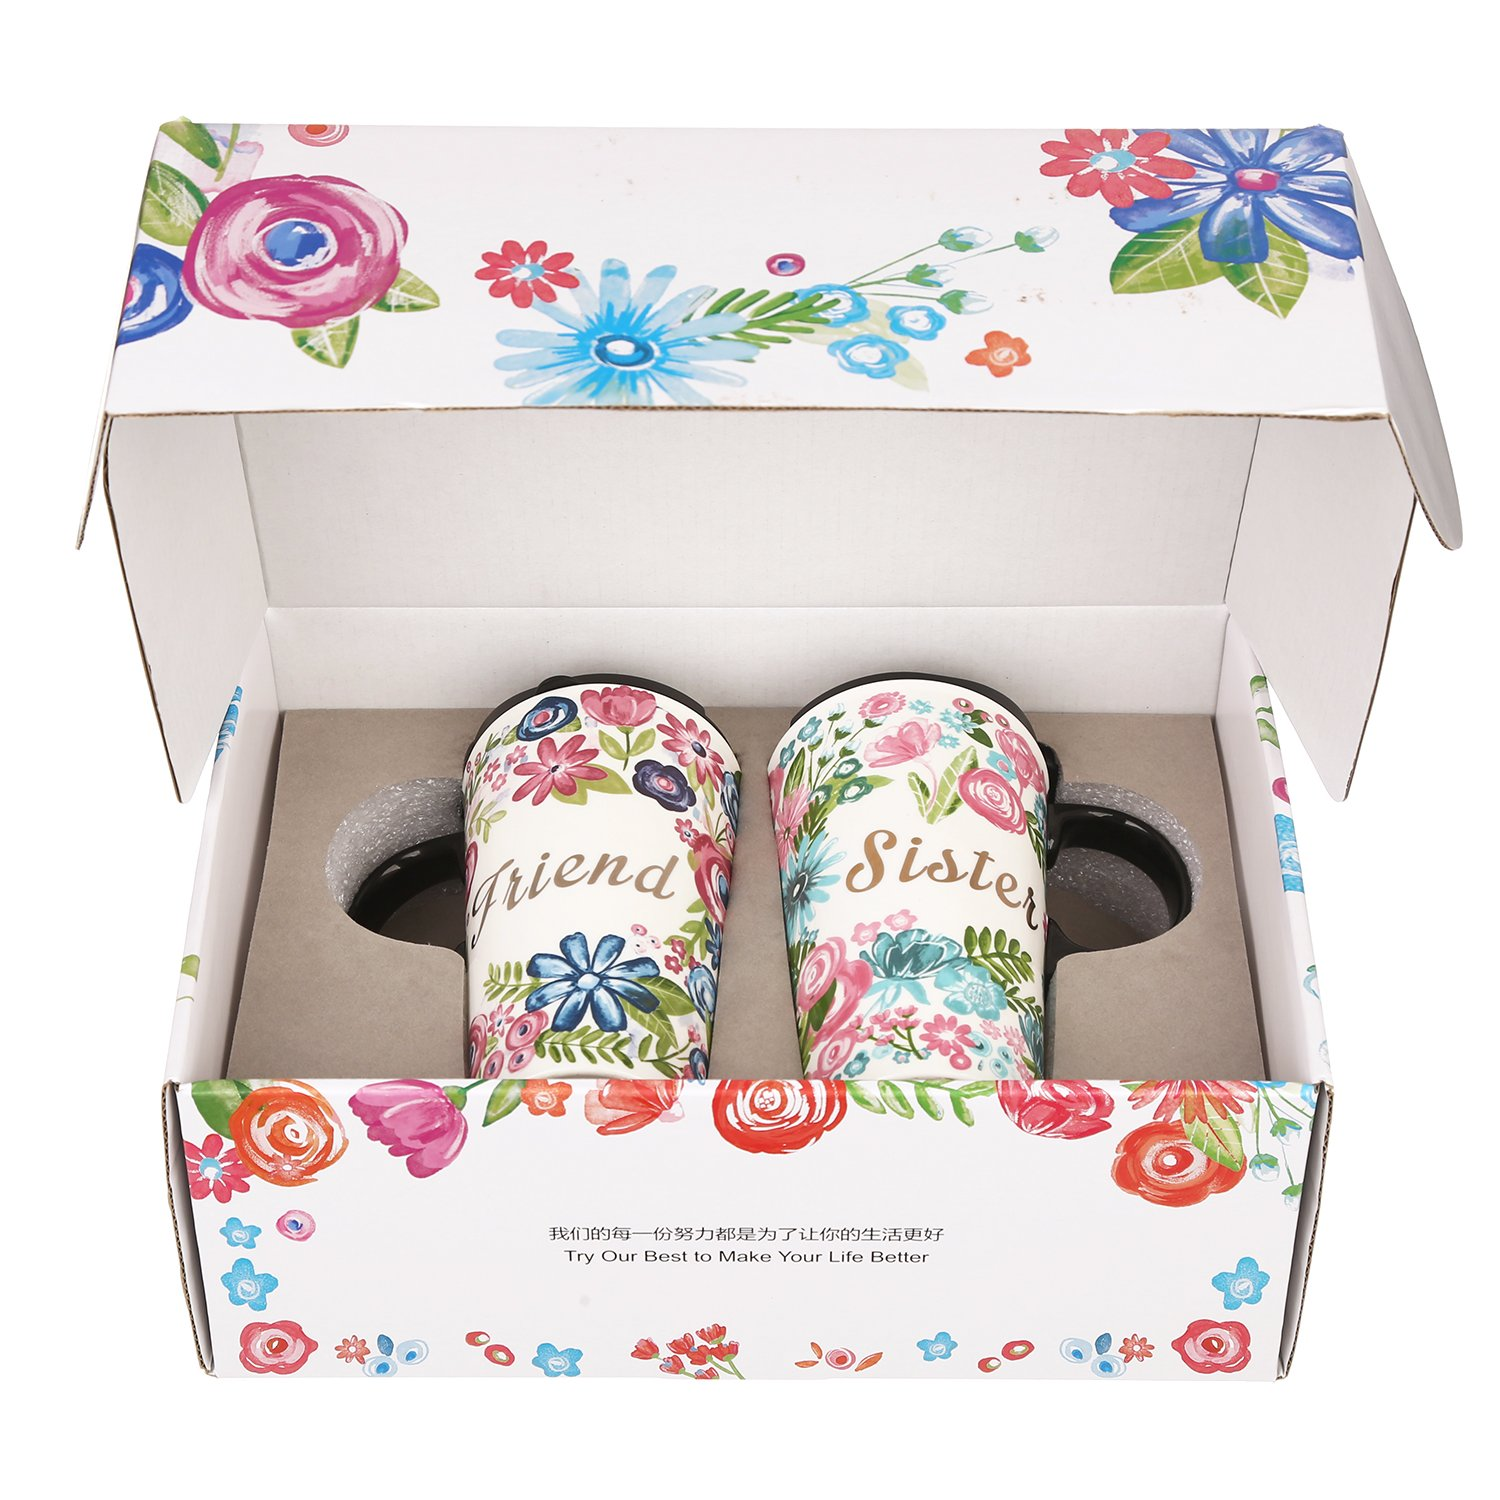 CEDAR HOME Travel Coffee Ceramic Mug Porcelain Latte Tea Cup With Lid in Gift Box 17oz. Sister & Friend, 2 Pack by CEDAR HOME (Image #3)